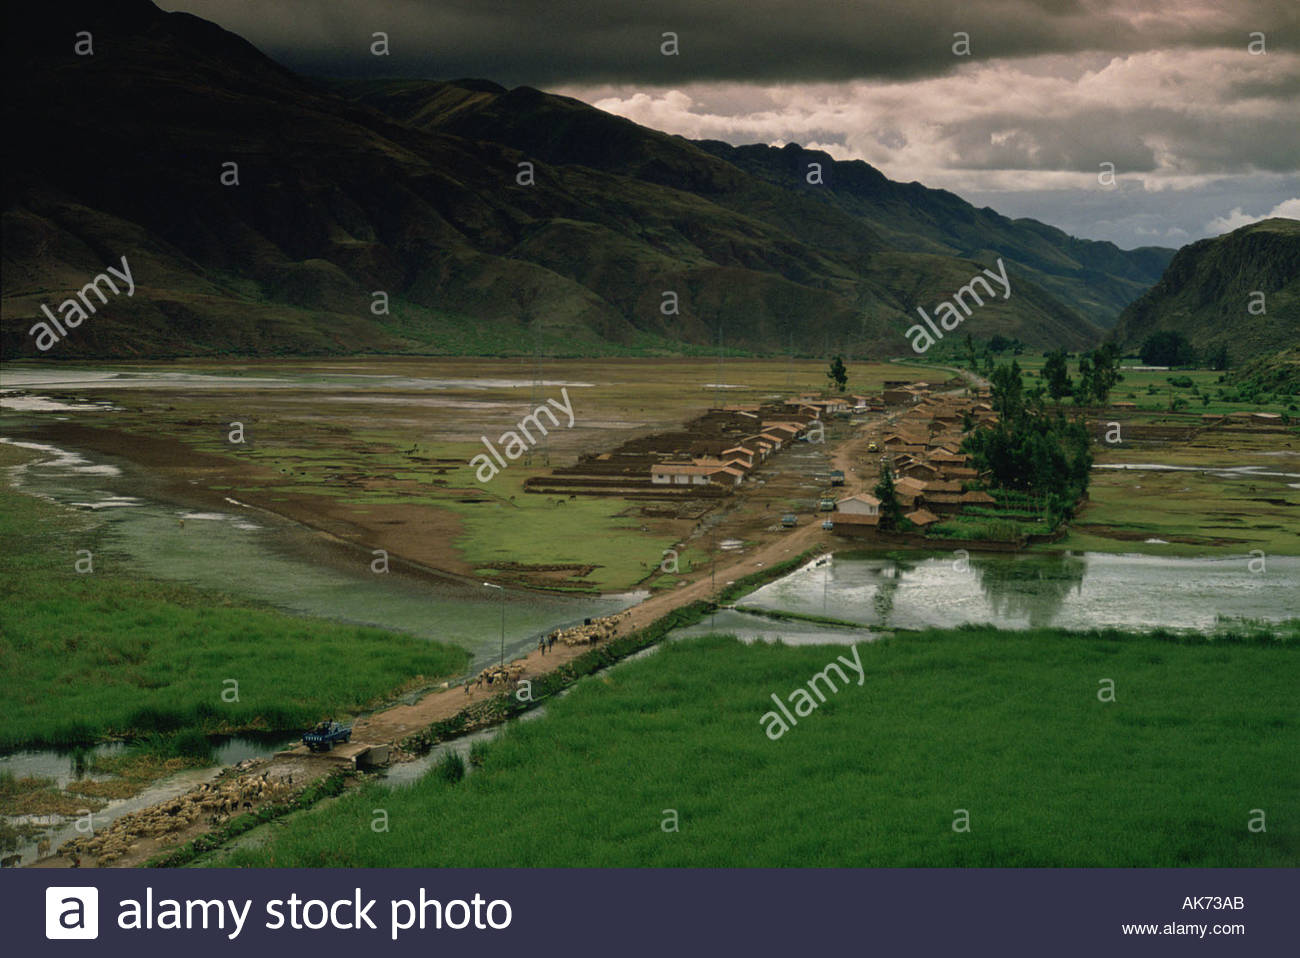 Mountain living near cusco peru royalty free stock photo - Peru Andes Cusco Province A Valley In The Sierra During The Rainy Season